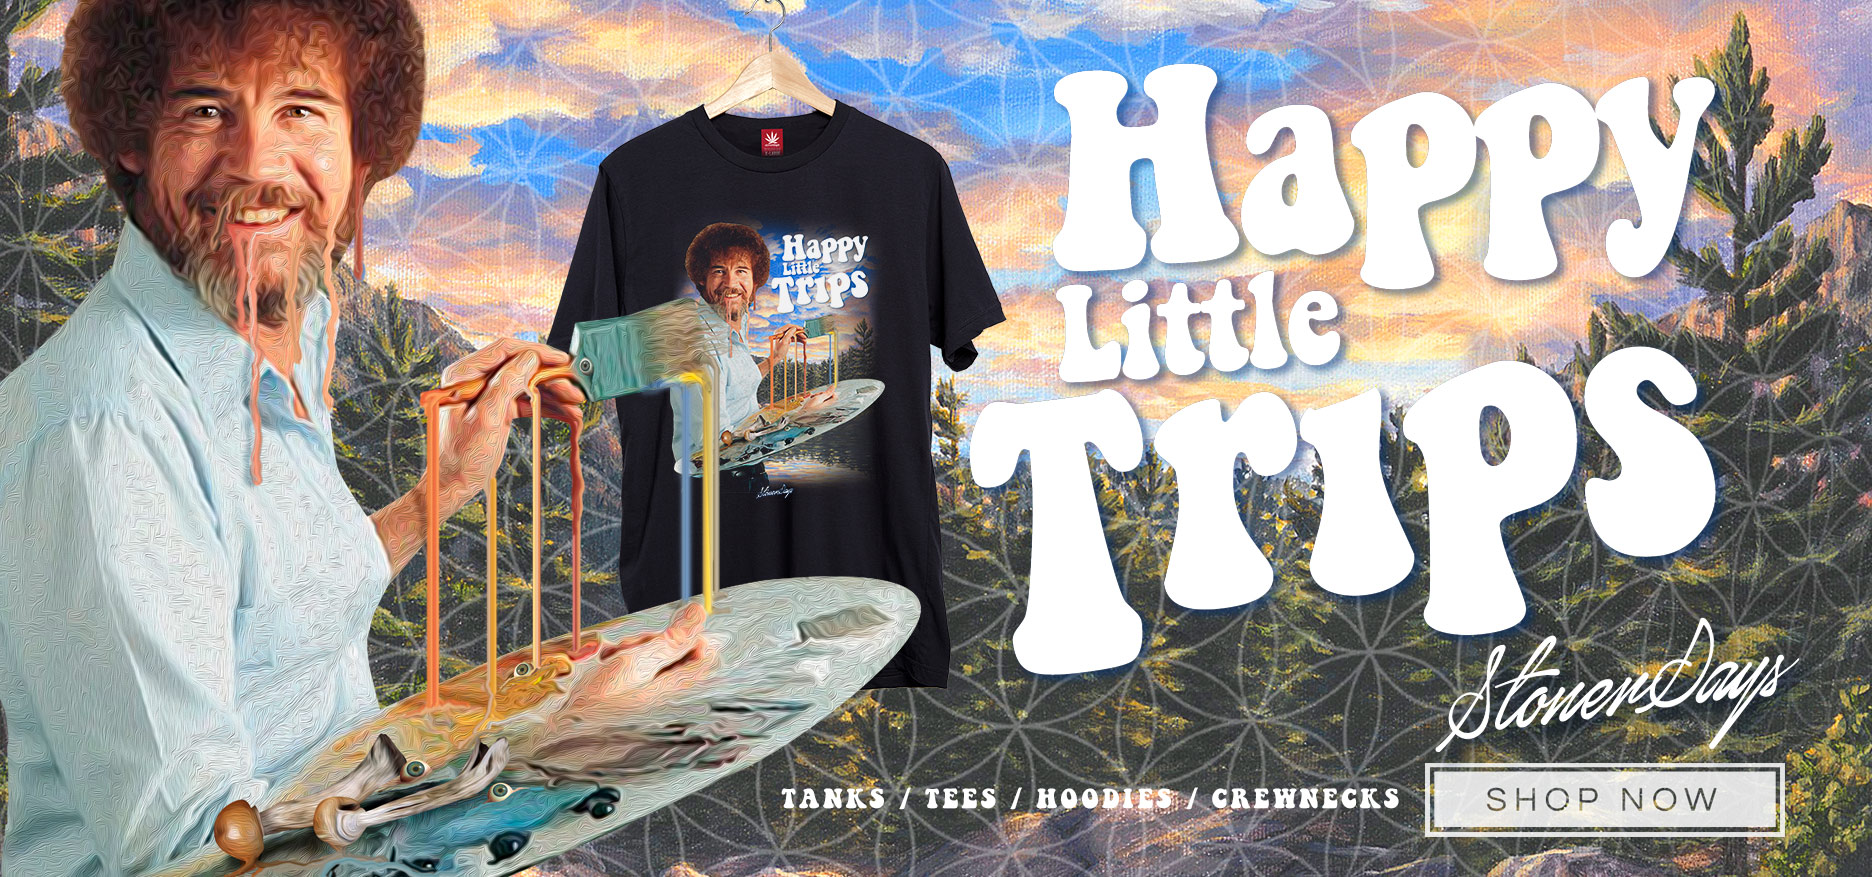 happy-little-trees-cannabis-bob-ross